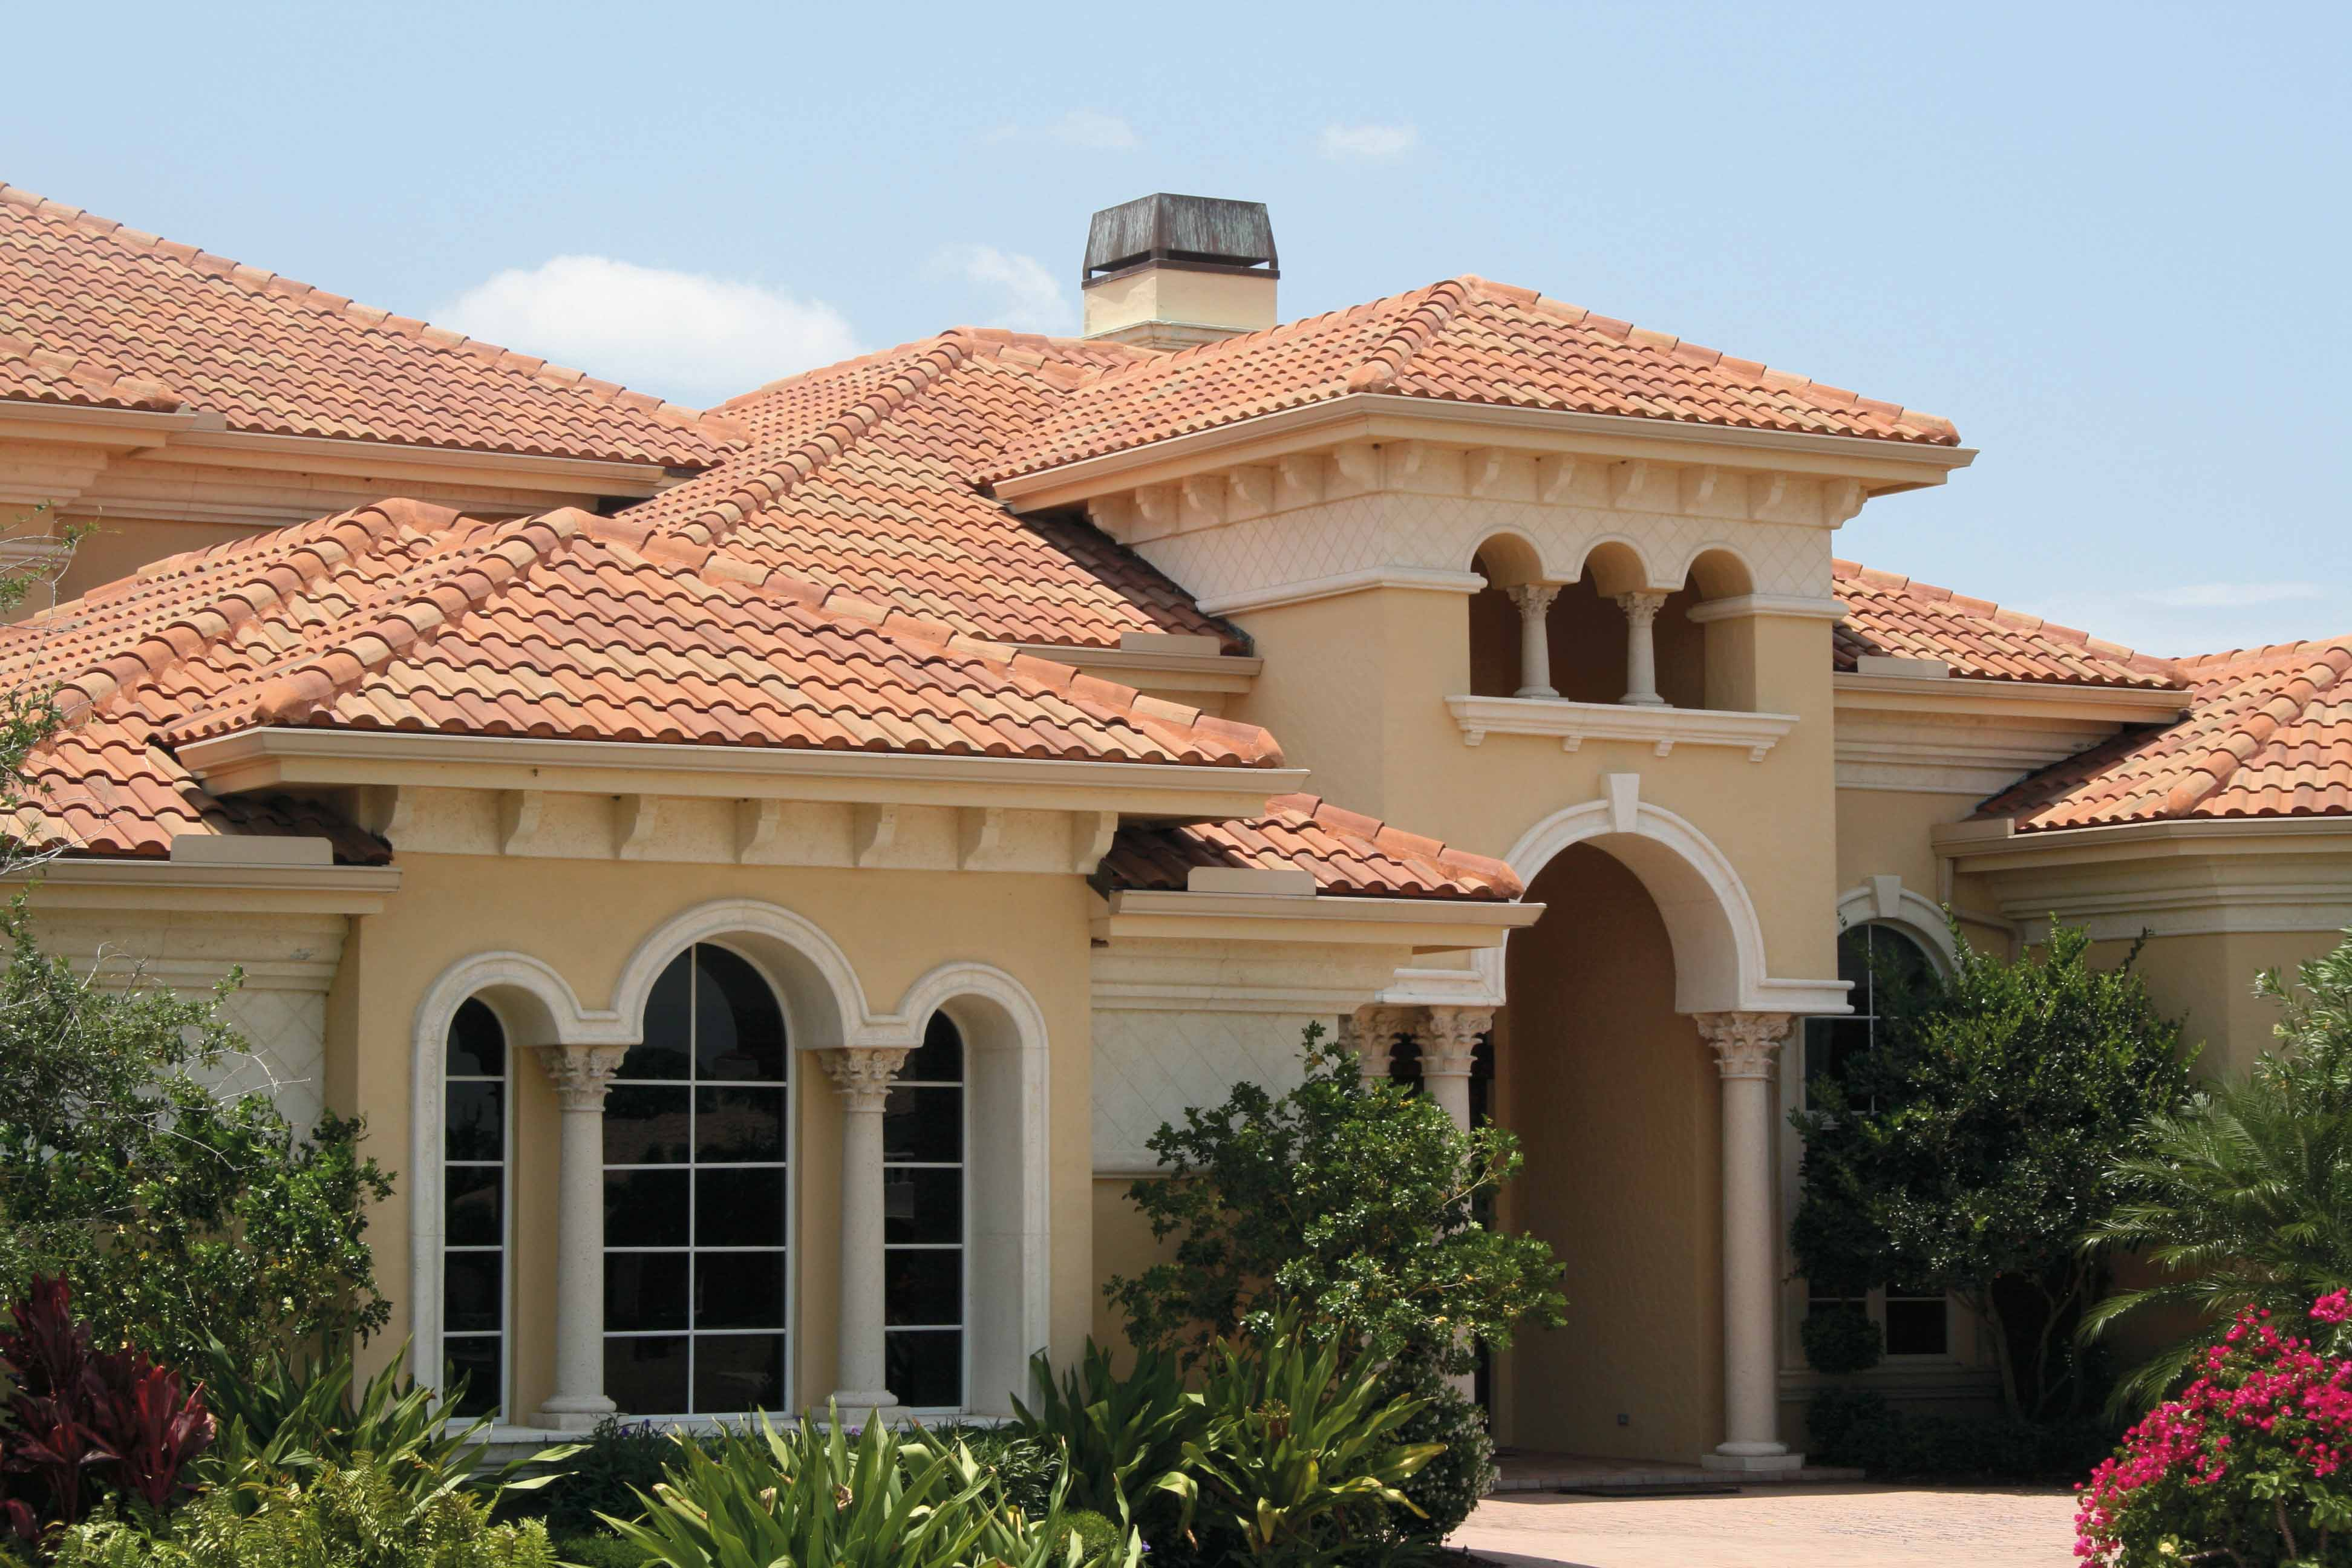 2 Clay Tiles Pakistan Spanish Roof Tiles Ceramic Roofing Tiles Khaprail Tiles in Lahore.